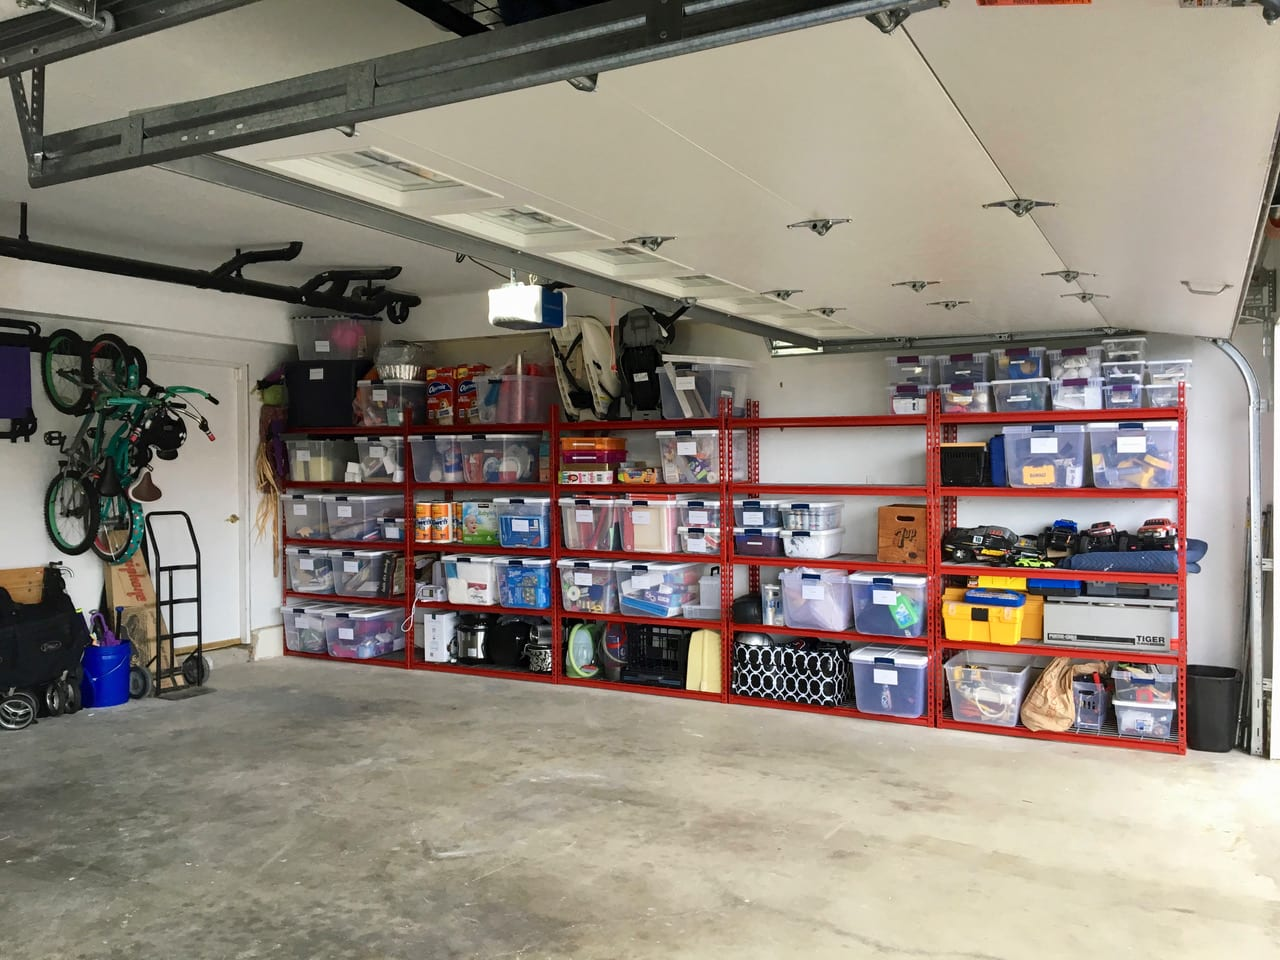 professional organizer help with garage organization using garage storage racks and labeled containers in a home in southern California